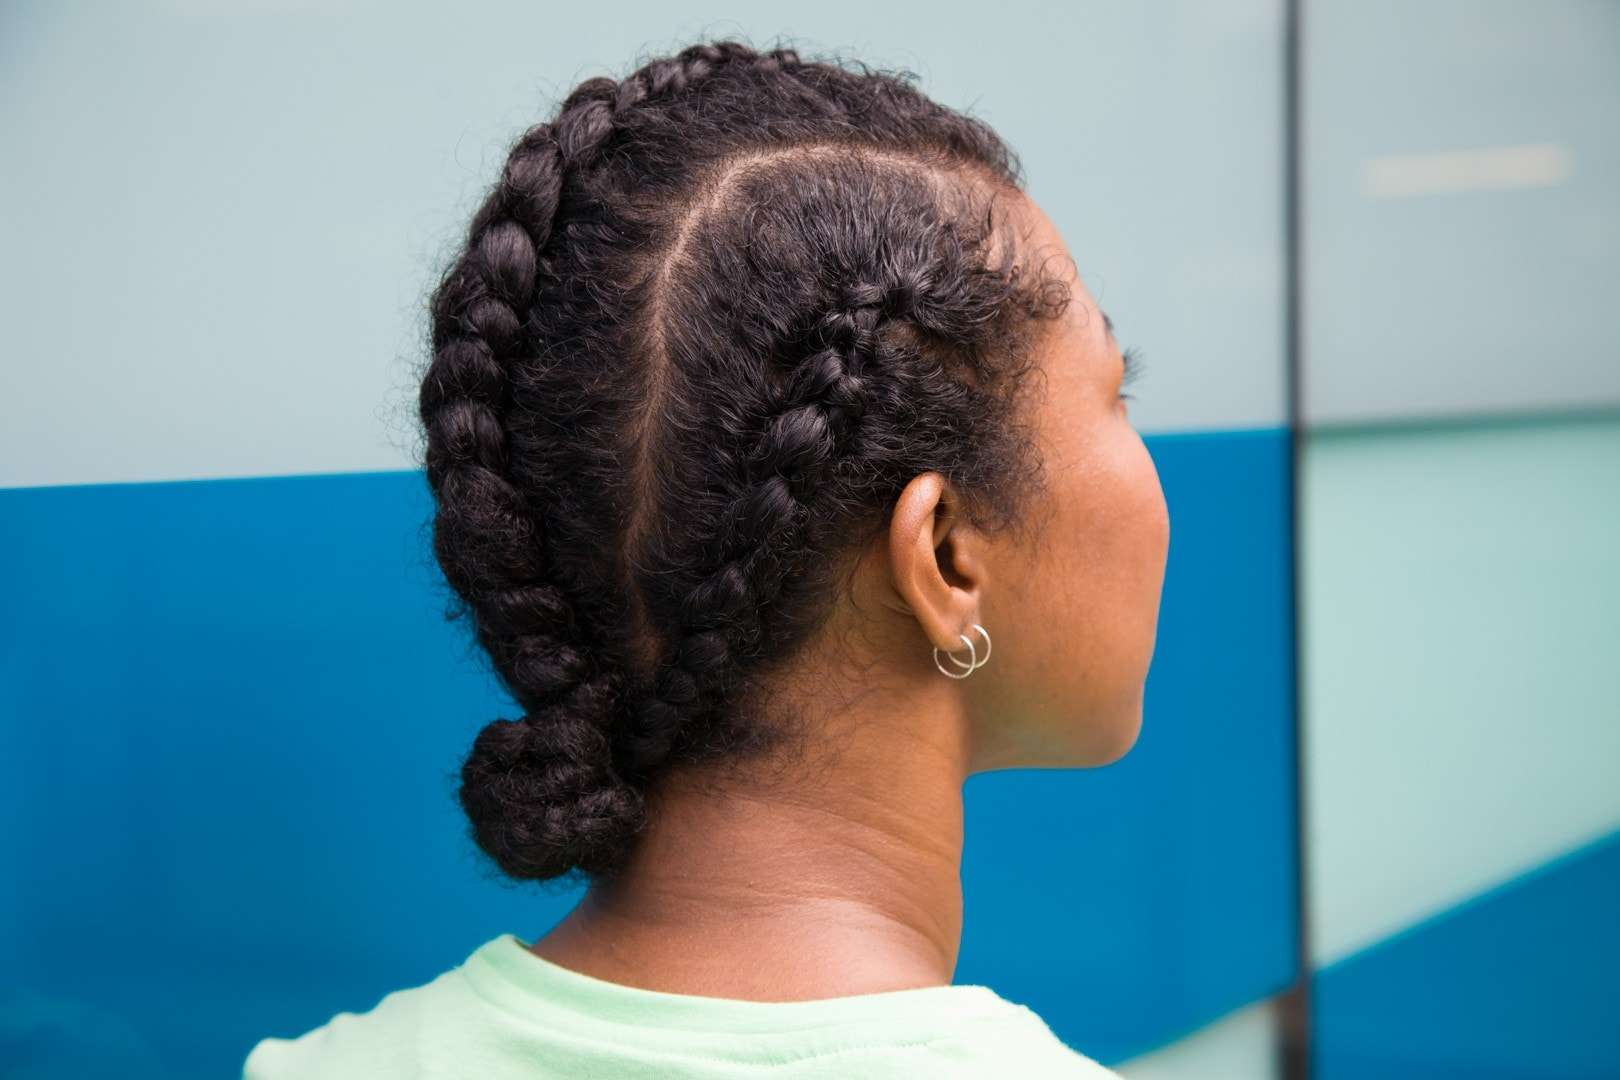 close up shot of woman with three part cornrow hairstyle, wearing green sporty top and posing outside